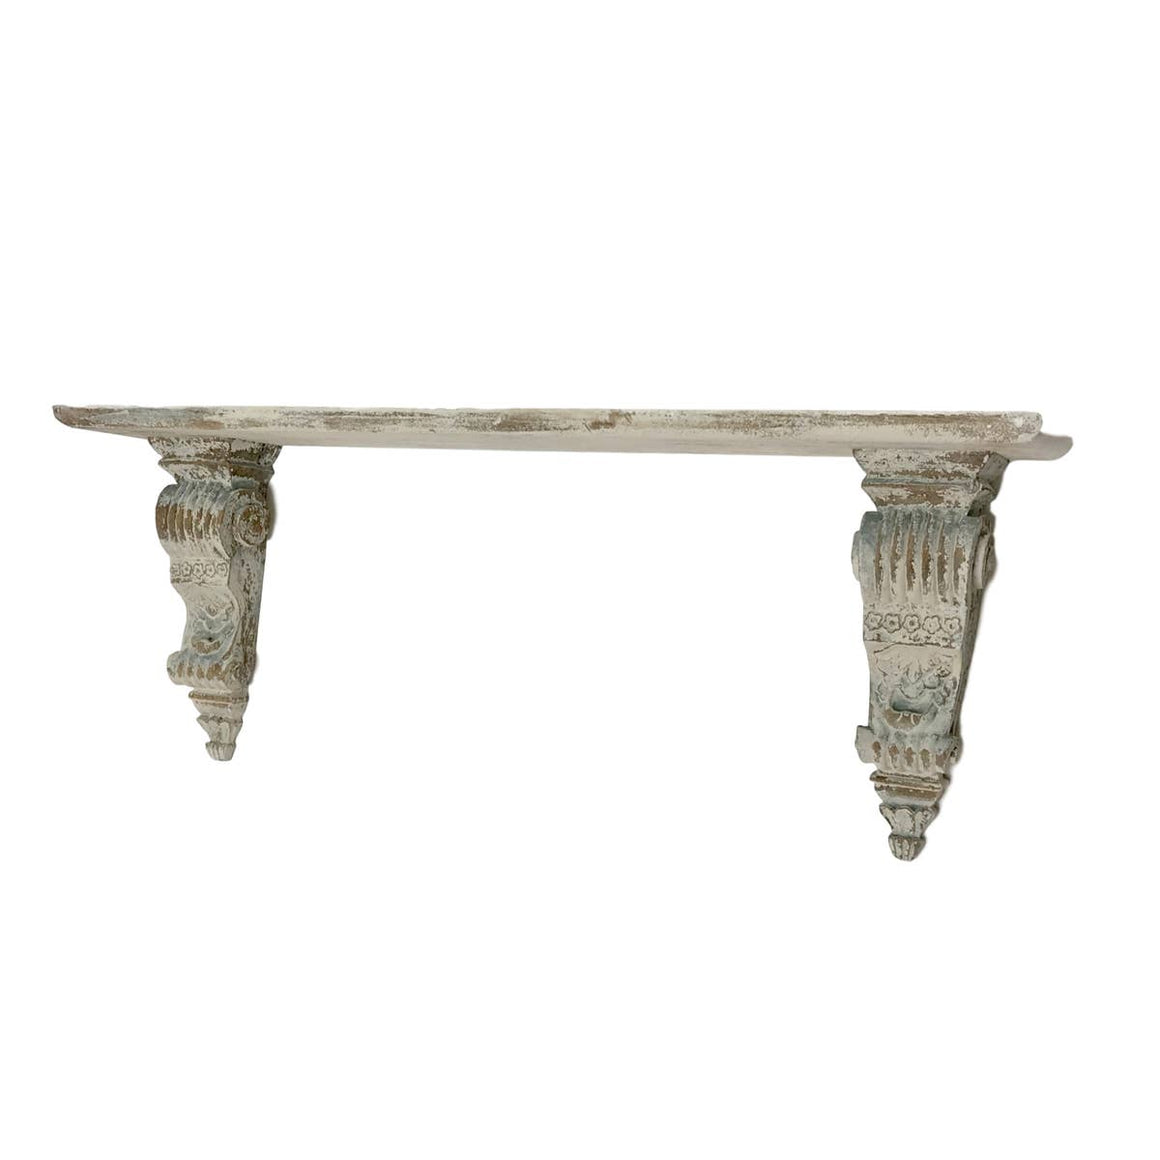 Diberville Corbel Shelf